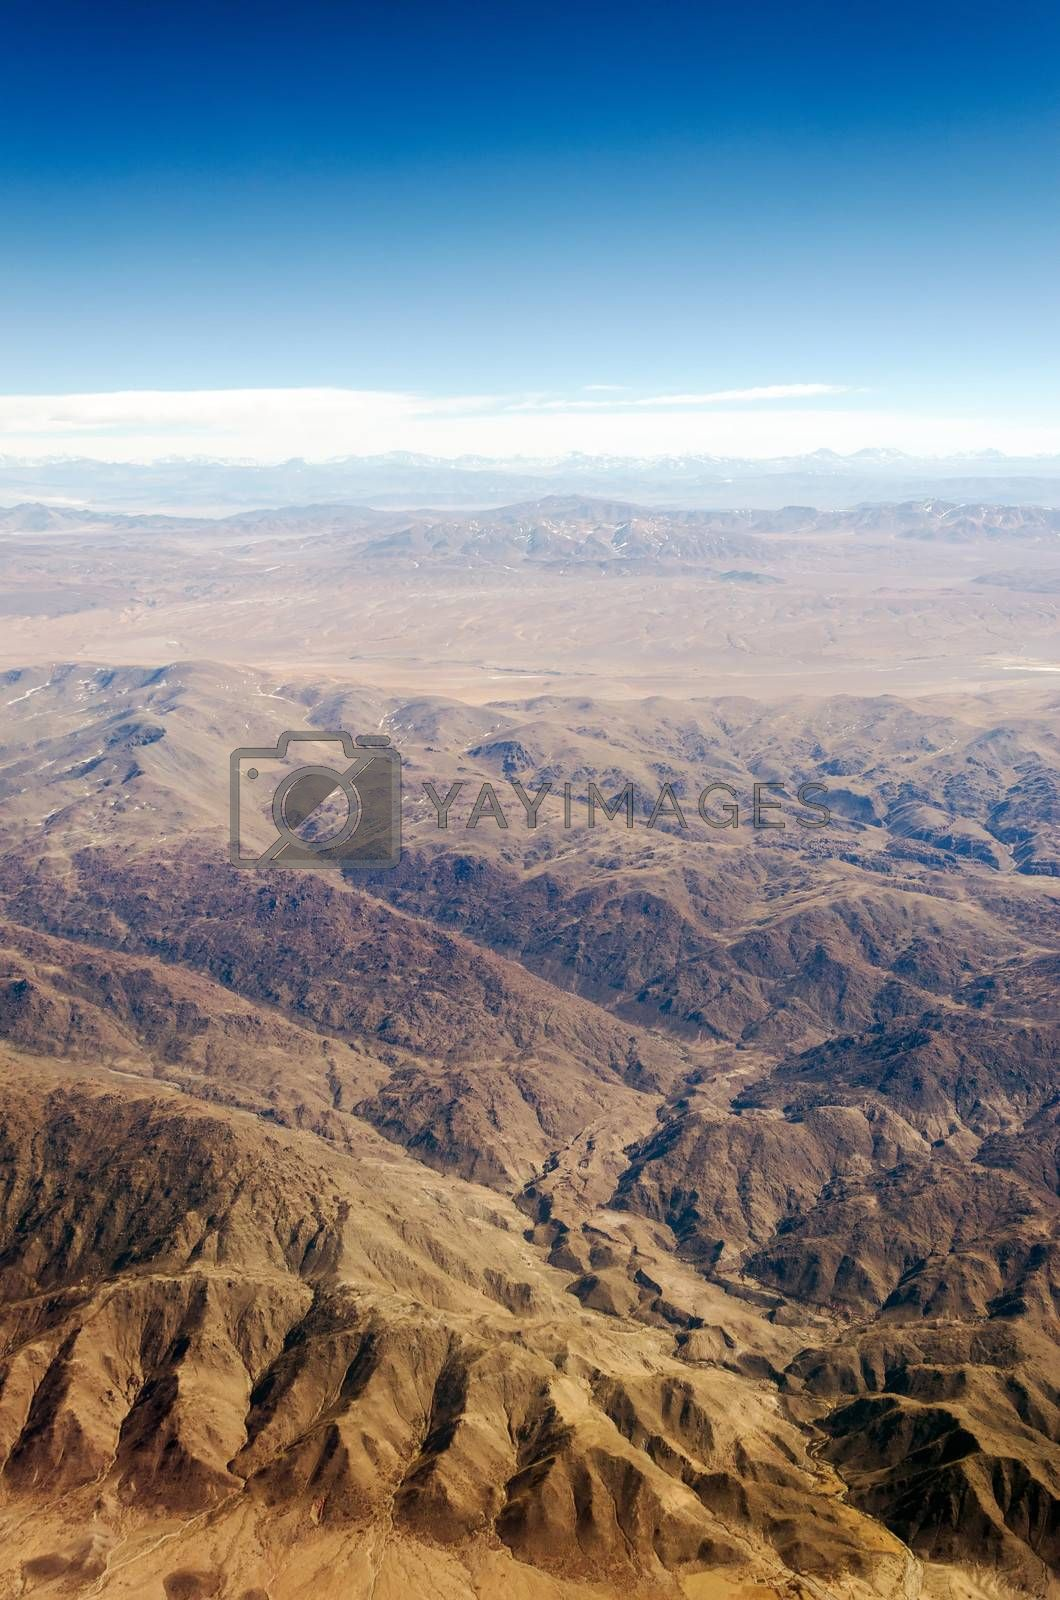 View of a dry desert from an airplane somewhere over South America